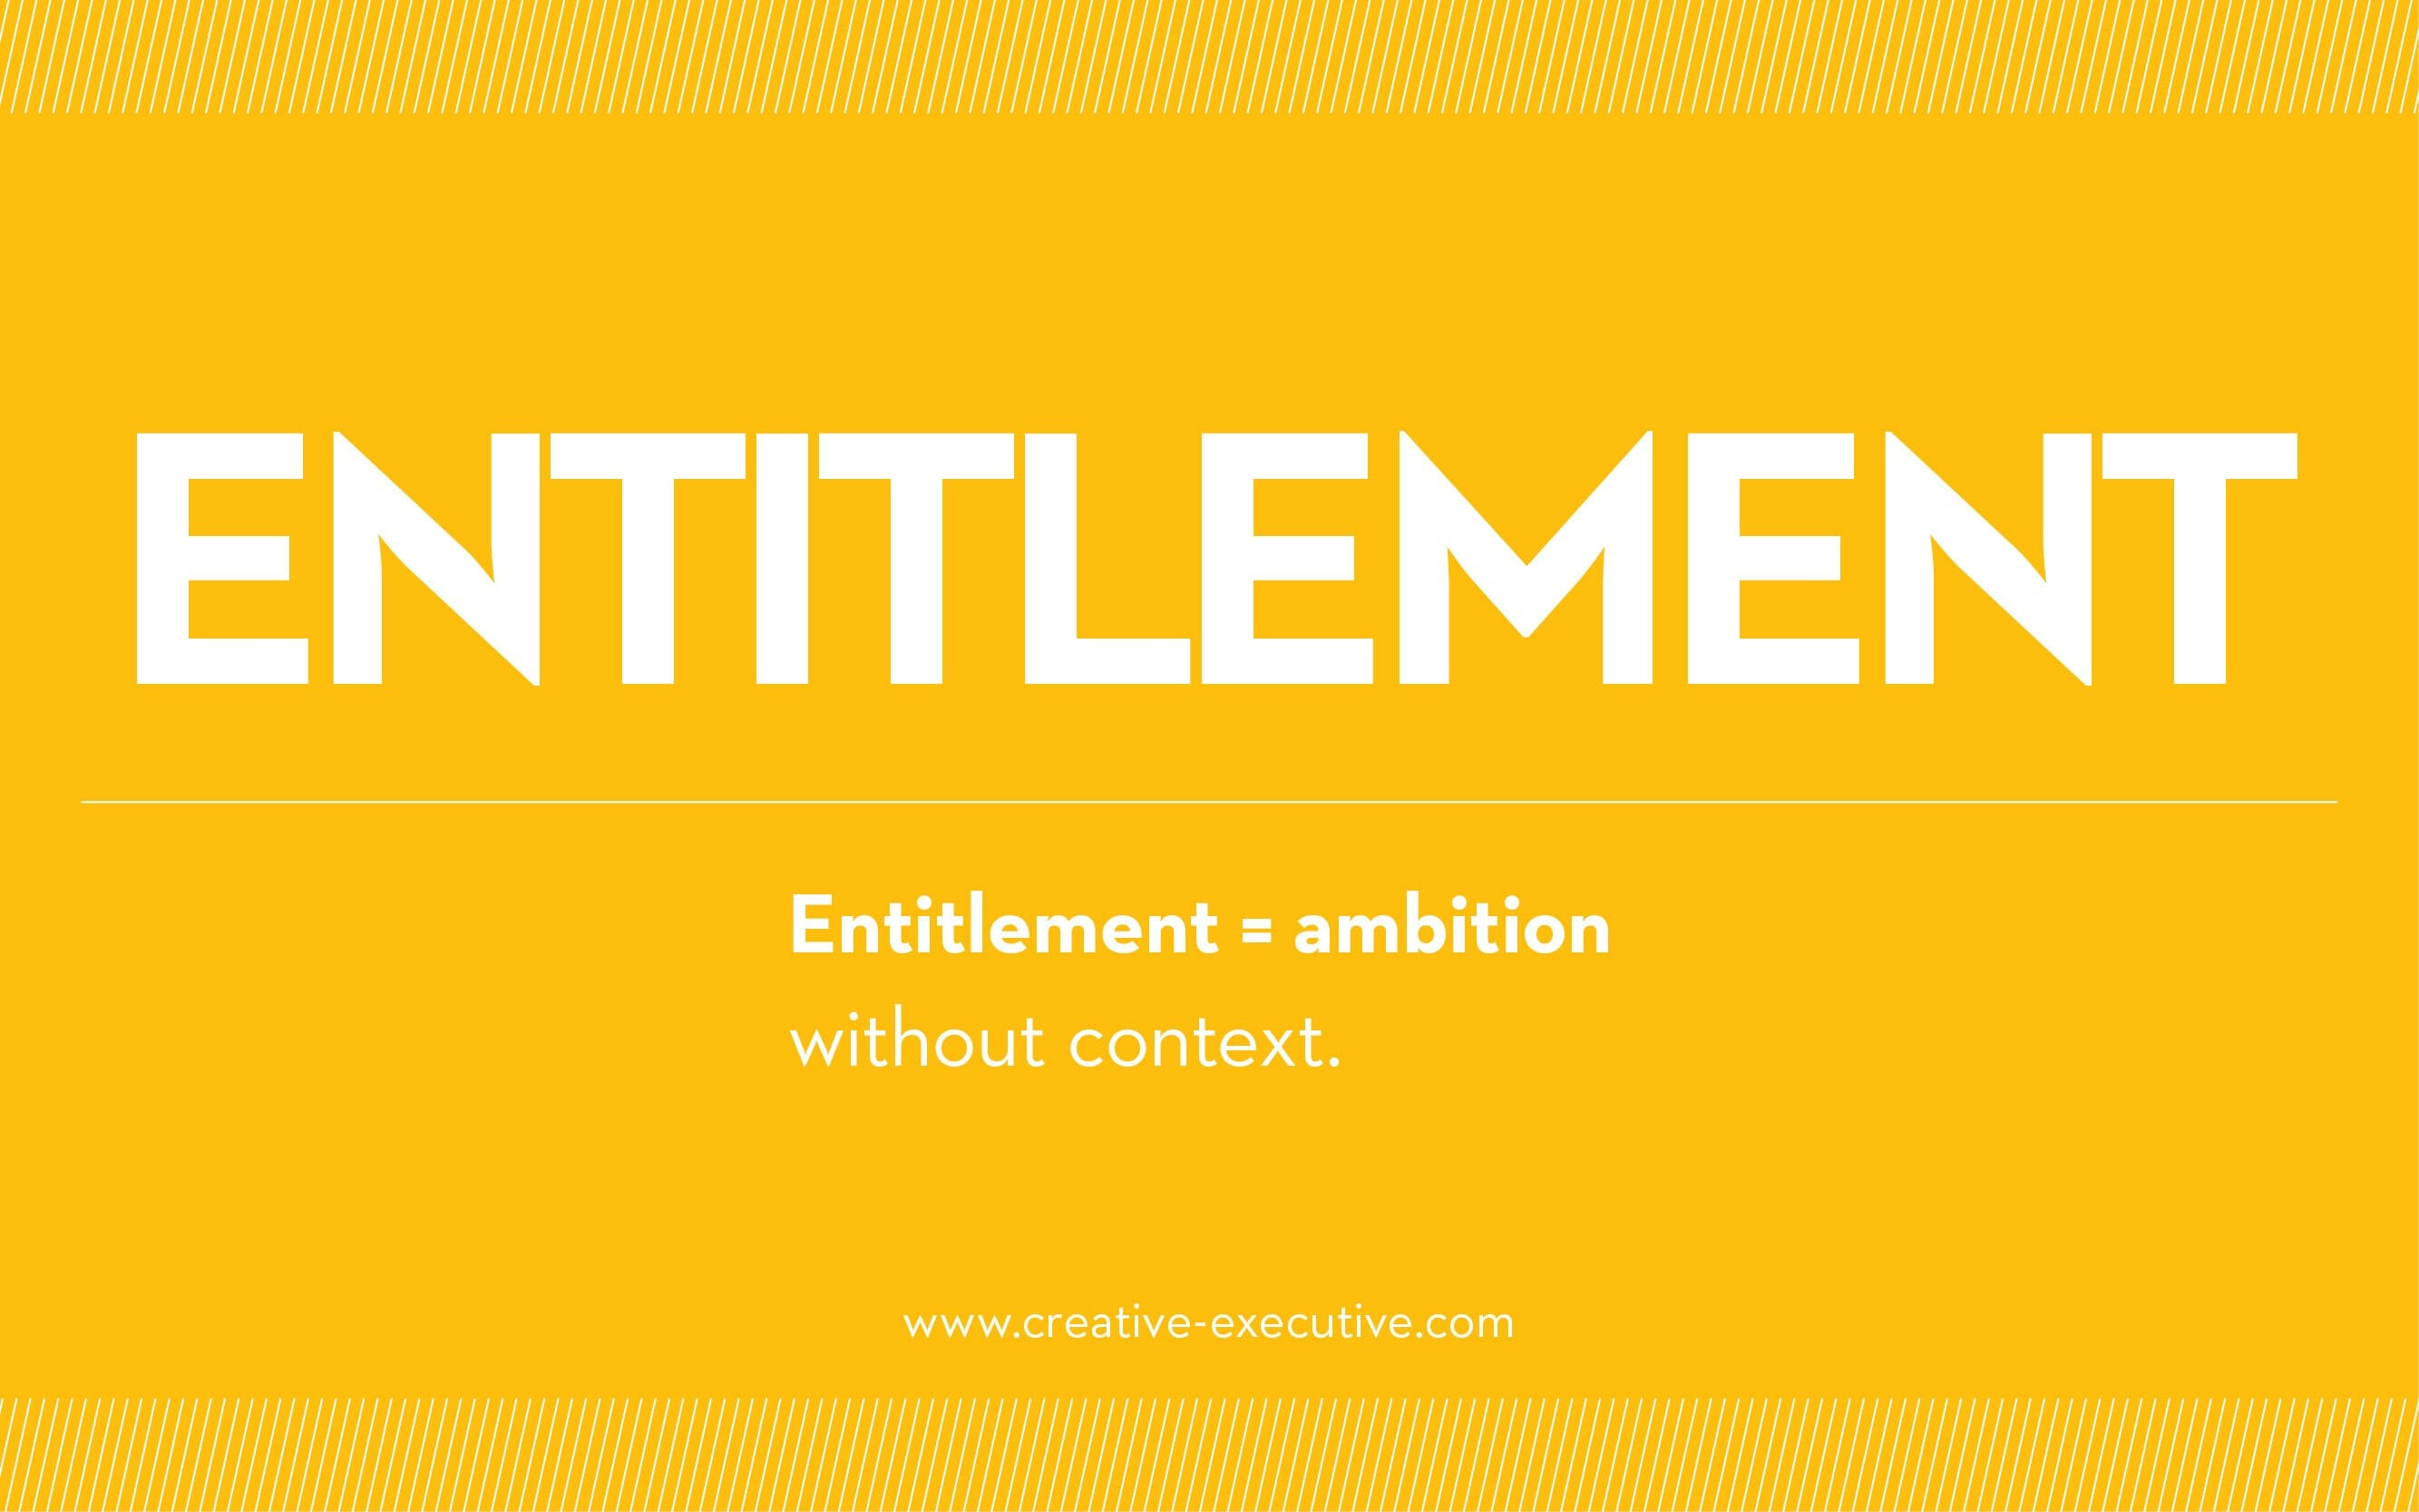 Entitlement=ambition without the context. The Creative Executive